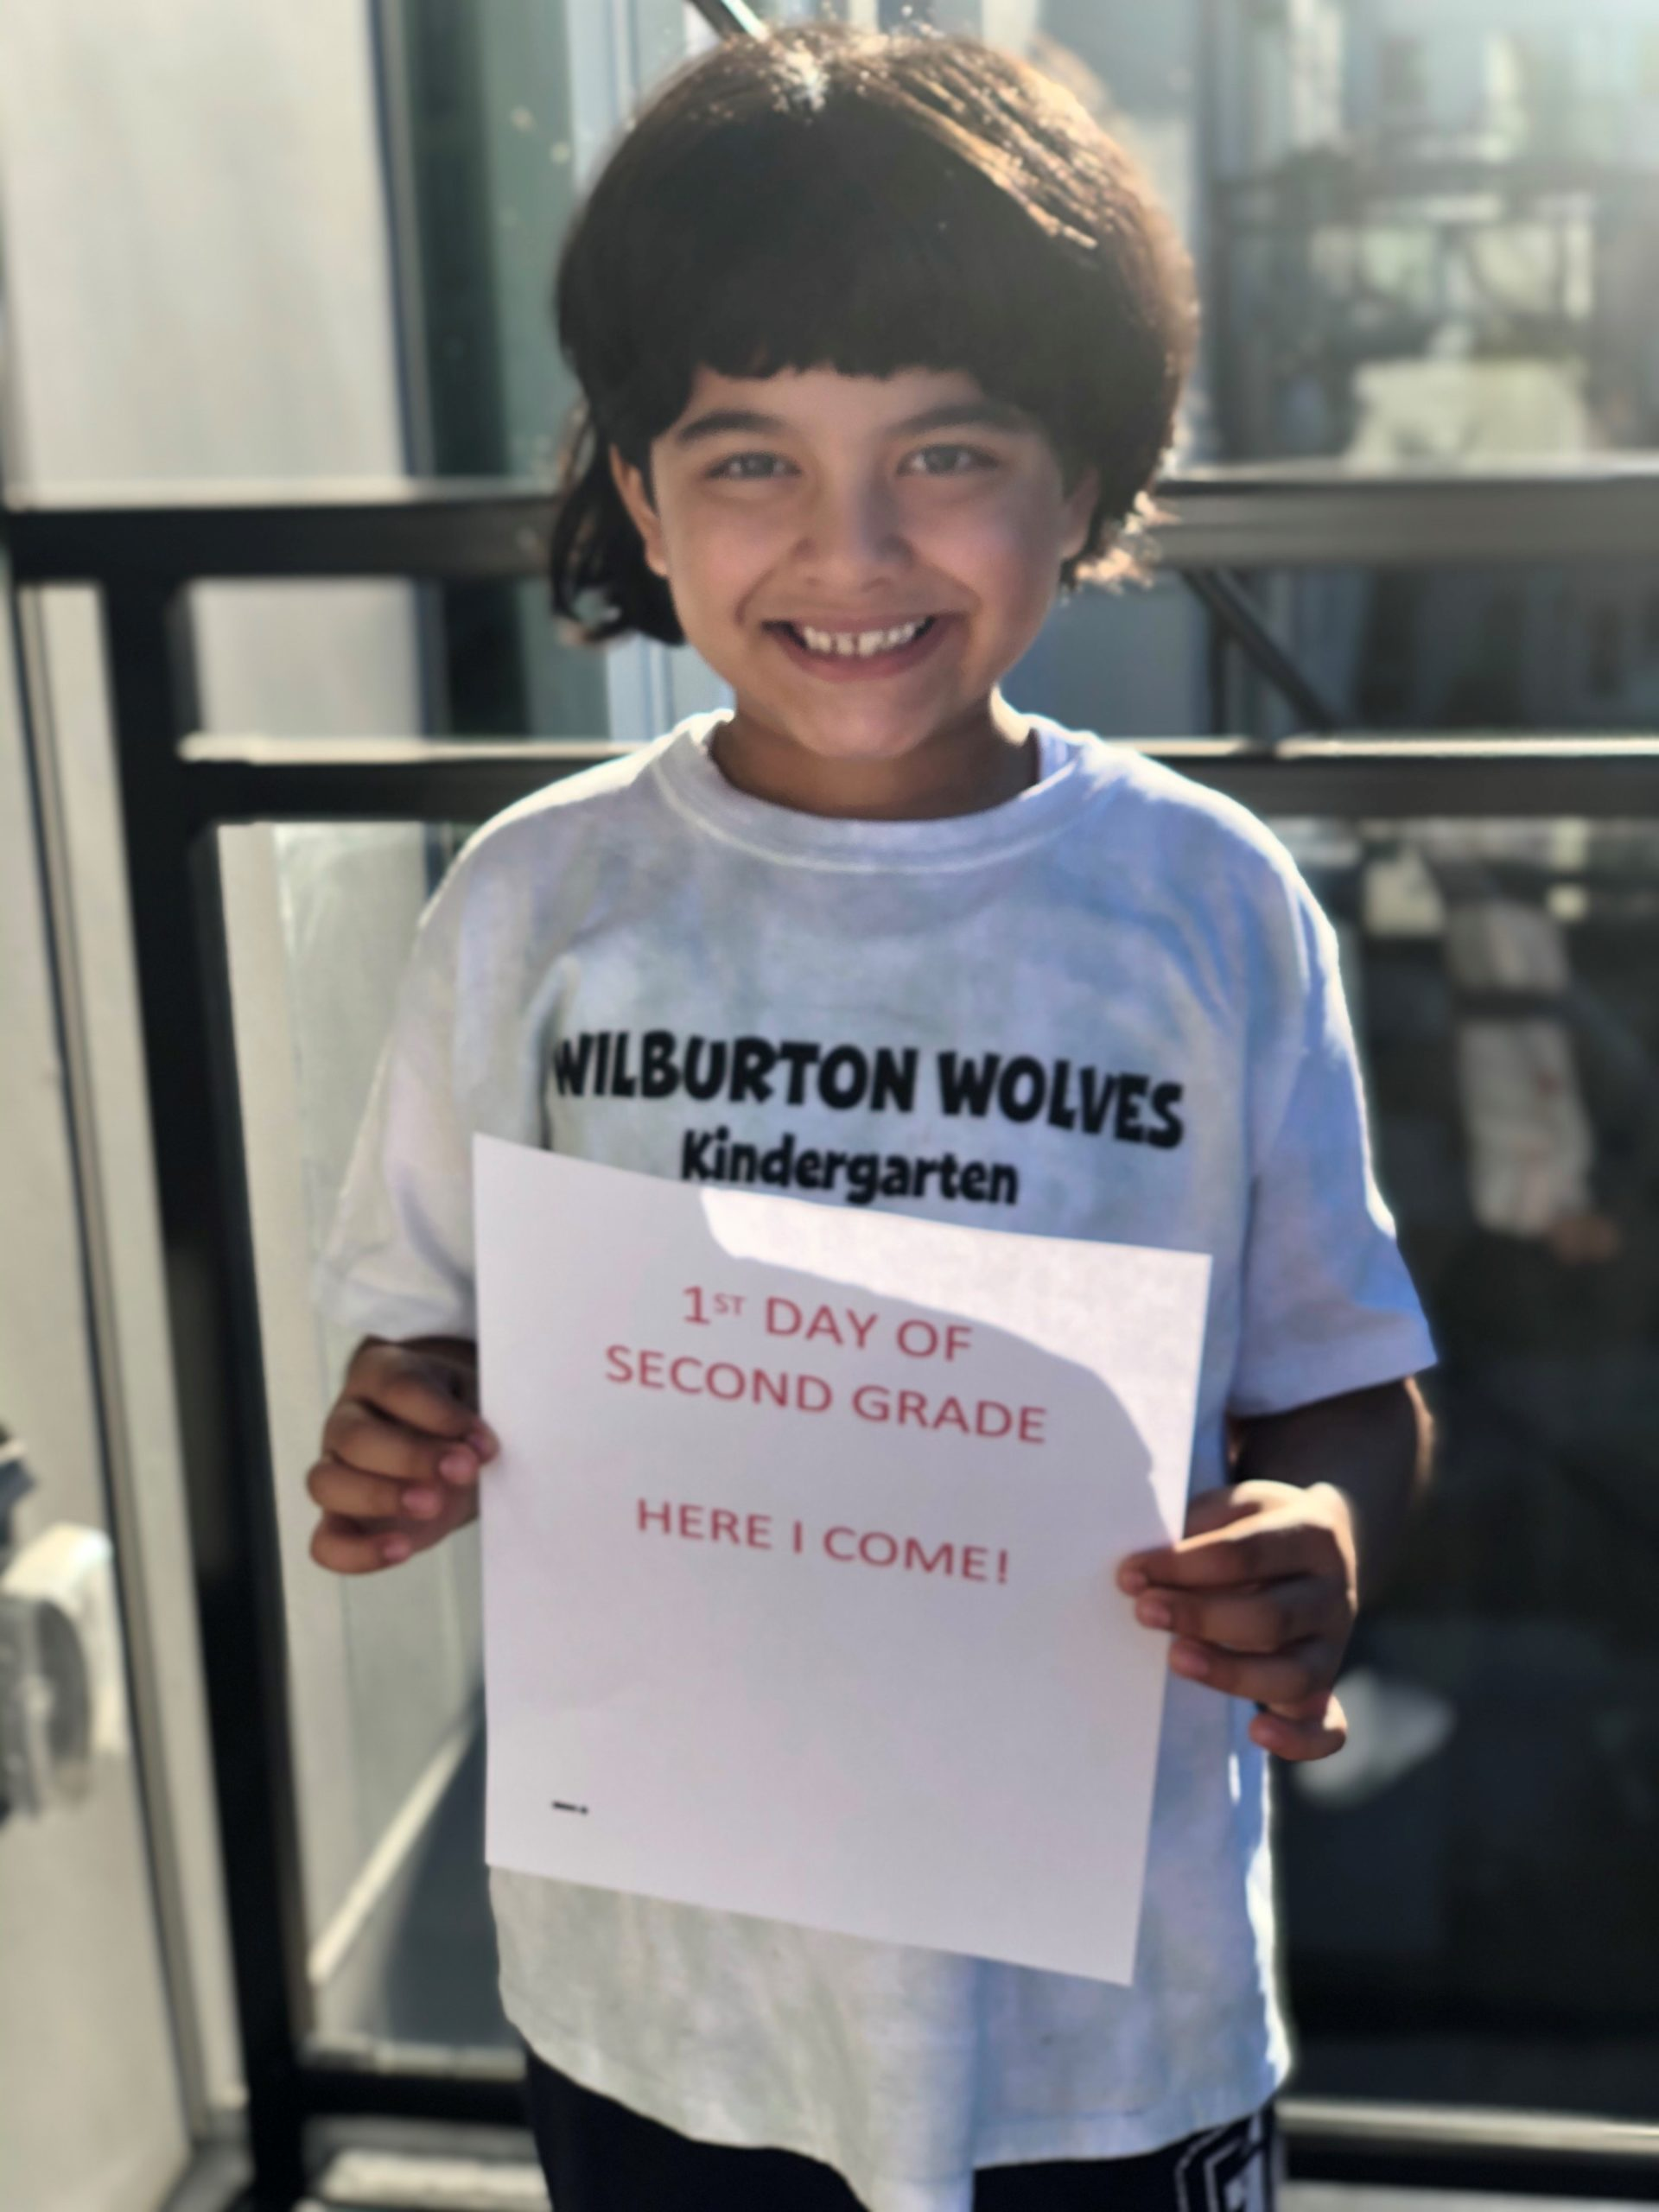 A student smiling, wearing a Wilburton shirt and holding a BSD first day sign